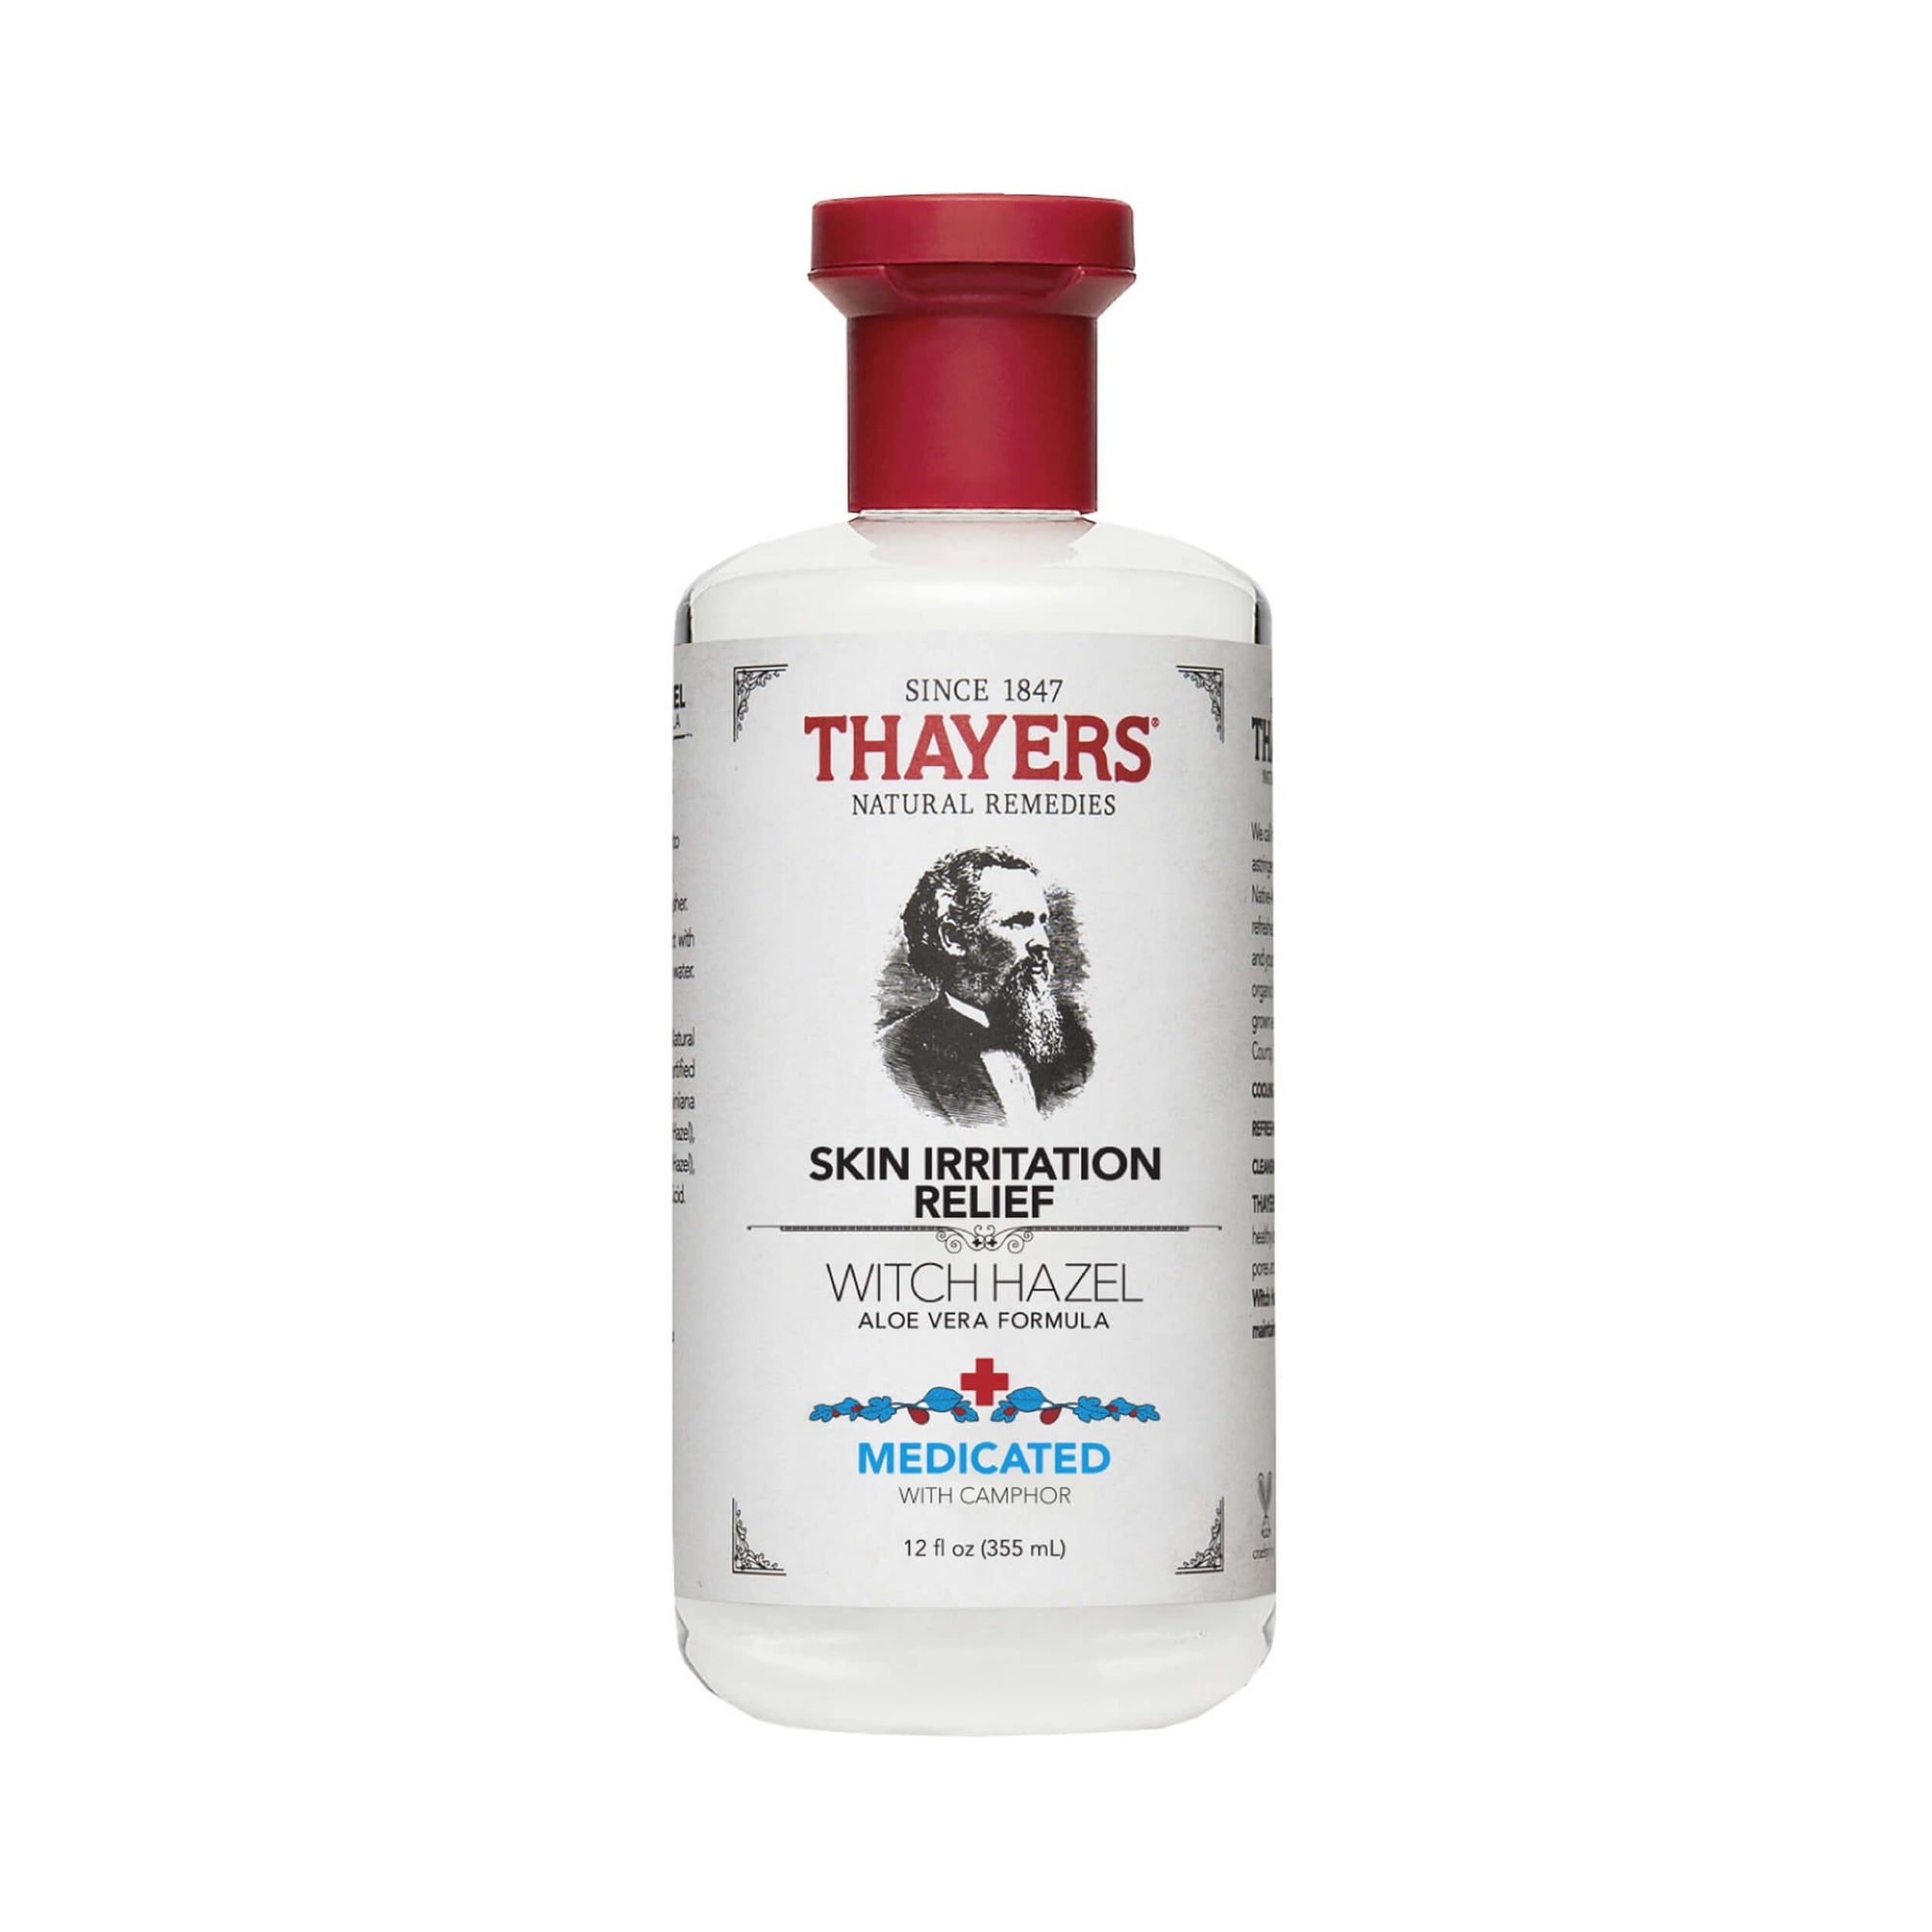 Thayers Alcohol Free Witch Hazel Medicated Skin Irritation Relief